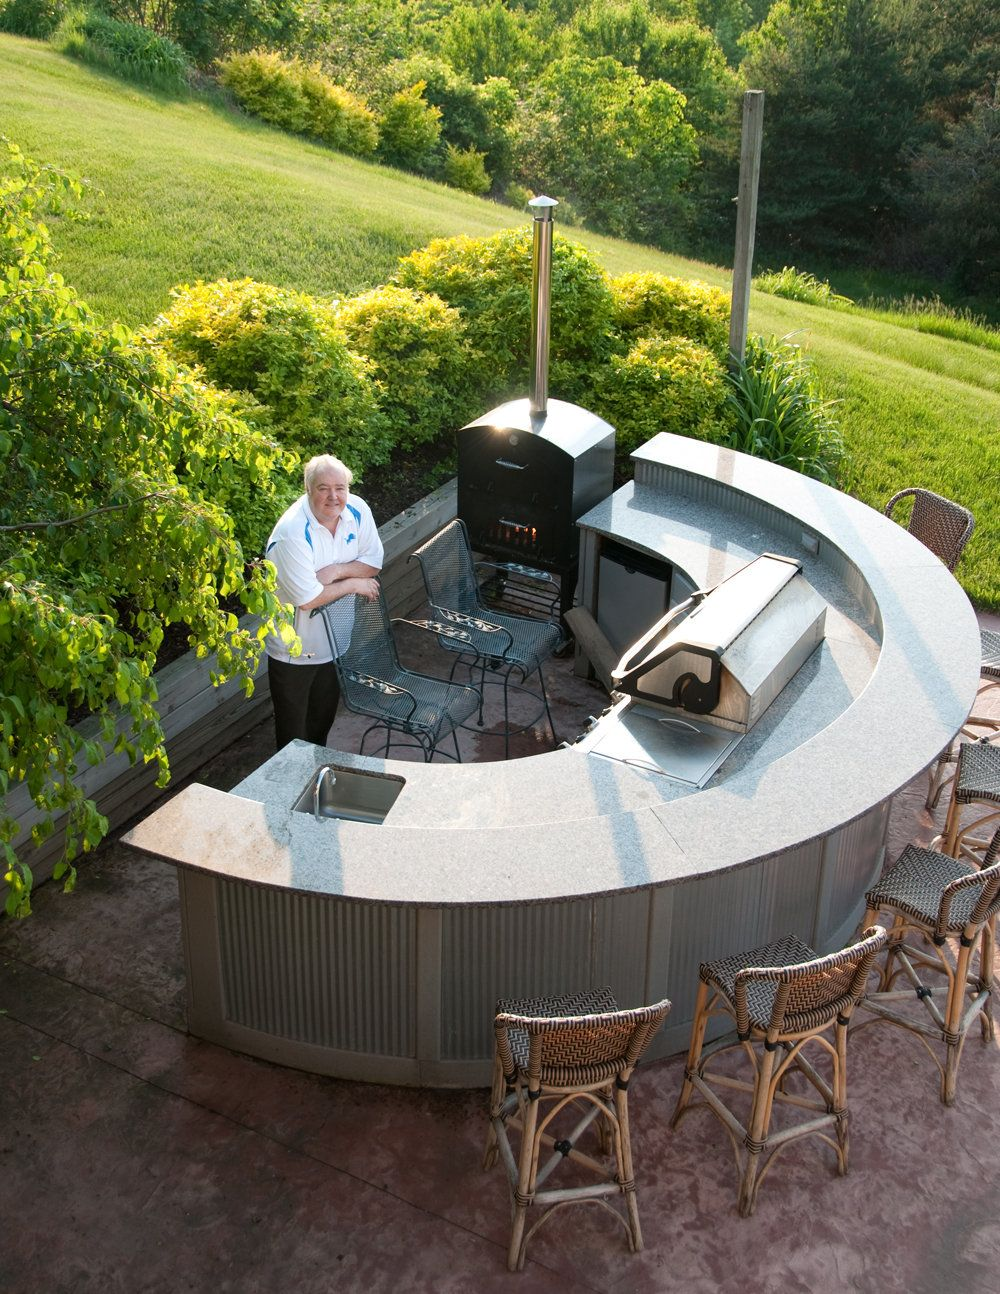 Diy Round Kitchen Island Ideas outdoor kitchens a growing trend | curved kitchen island, sinks